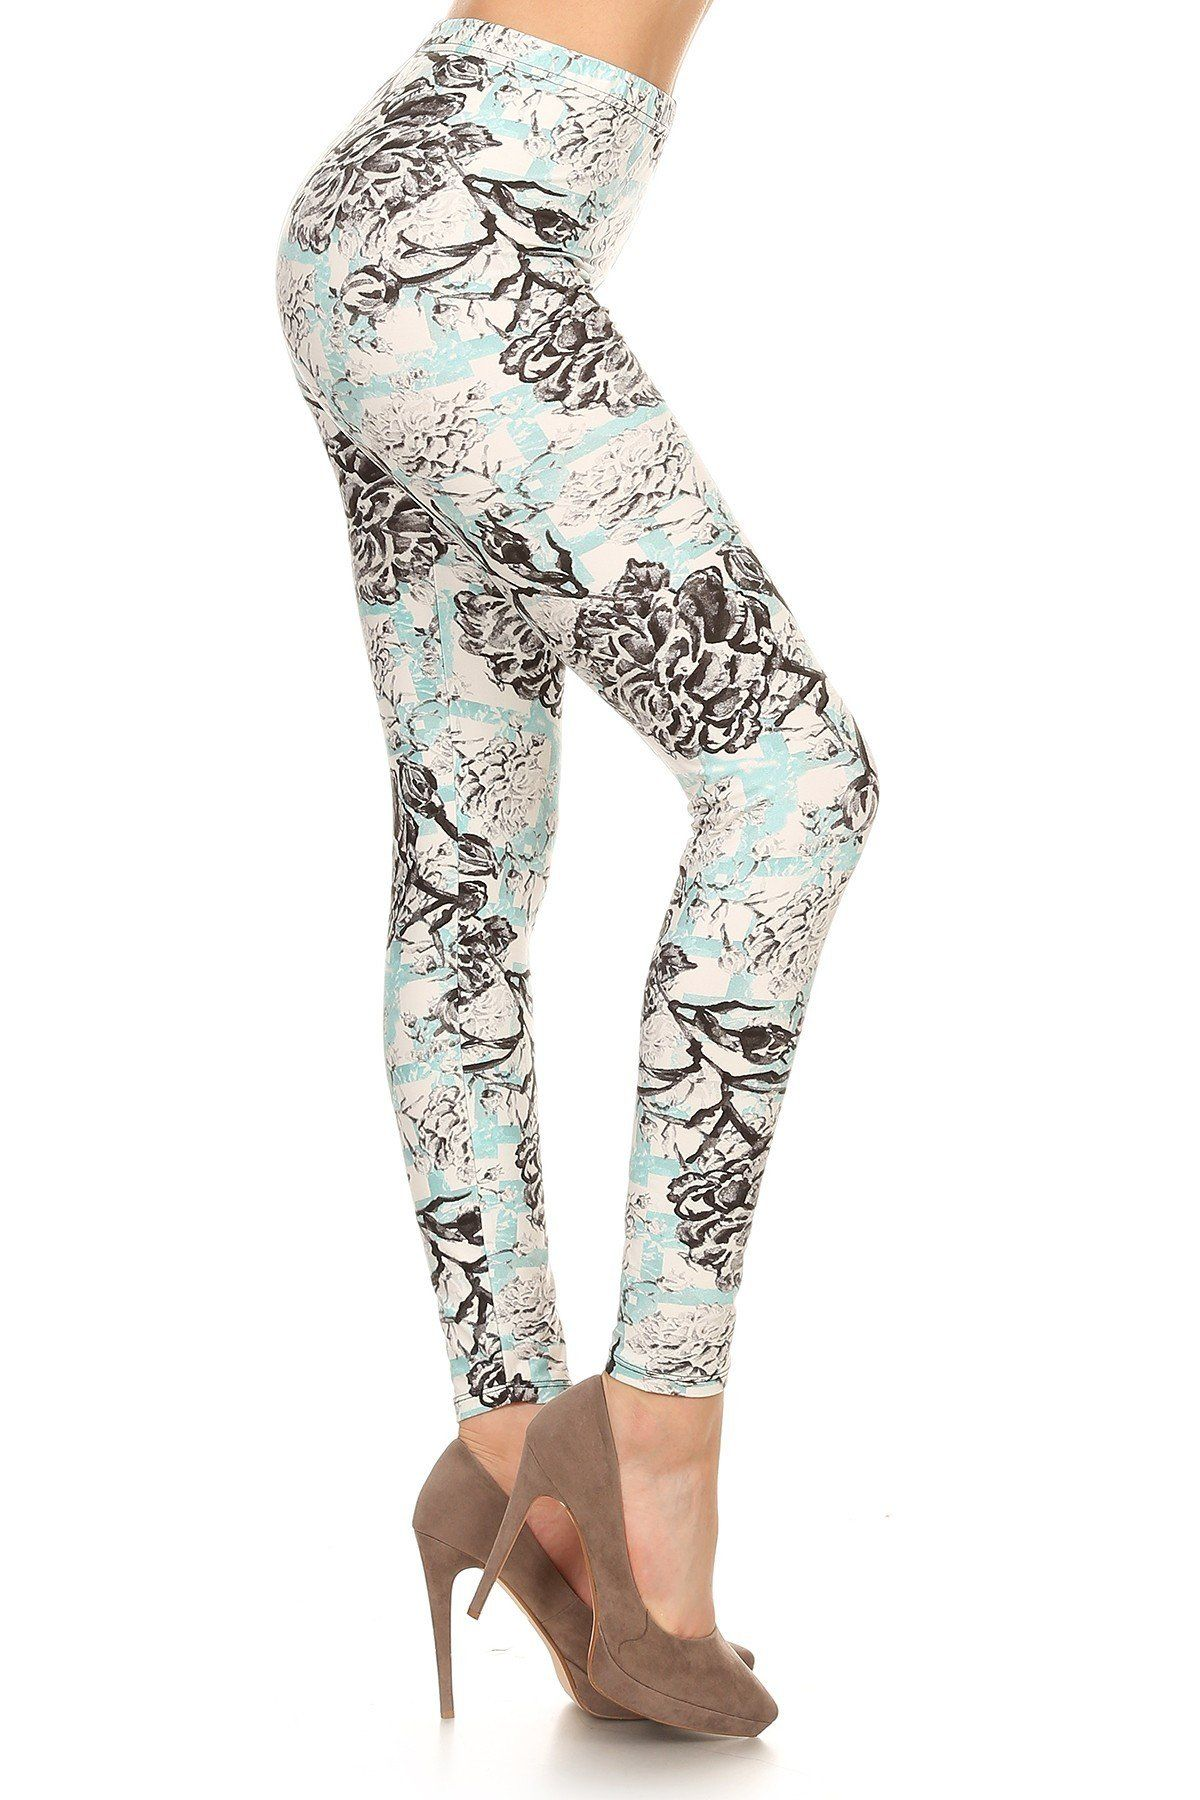 dbf388fd9ffd23 Misty Floral Leggings #CortneyCrossingTop #WifeyLove #WinterFashion #Truth  #BLESSED #Shoes #